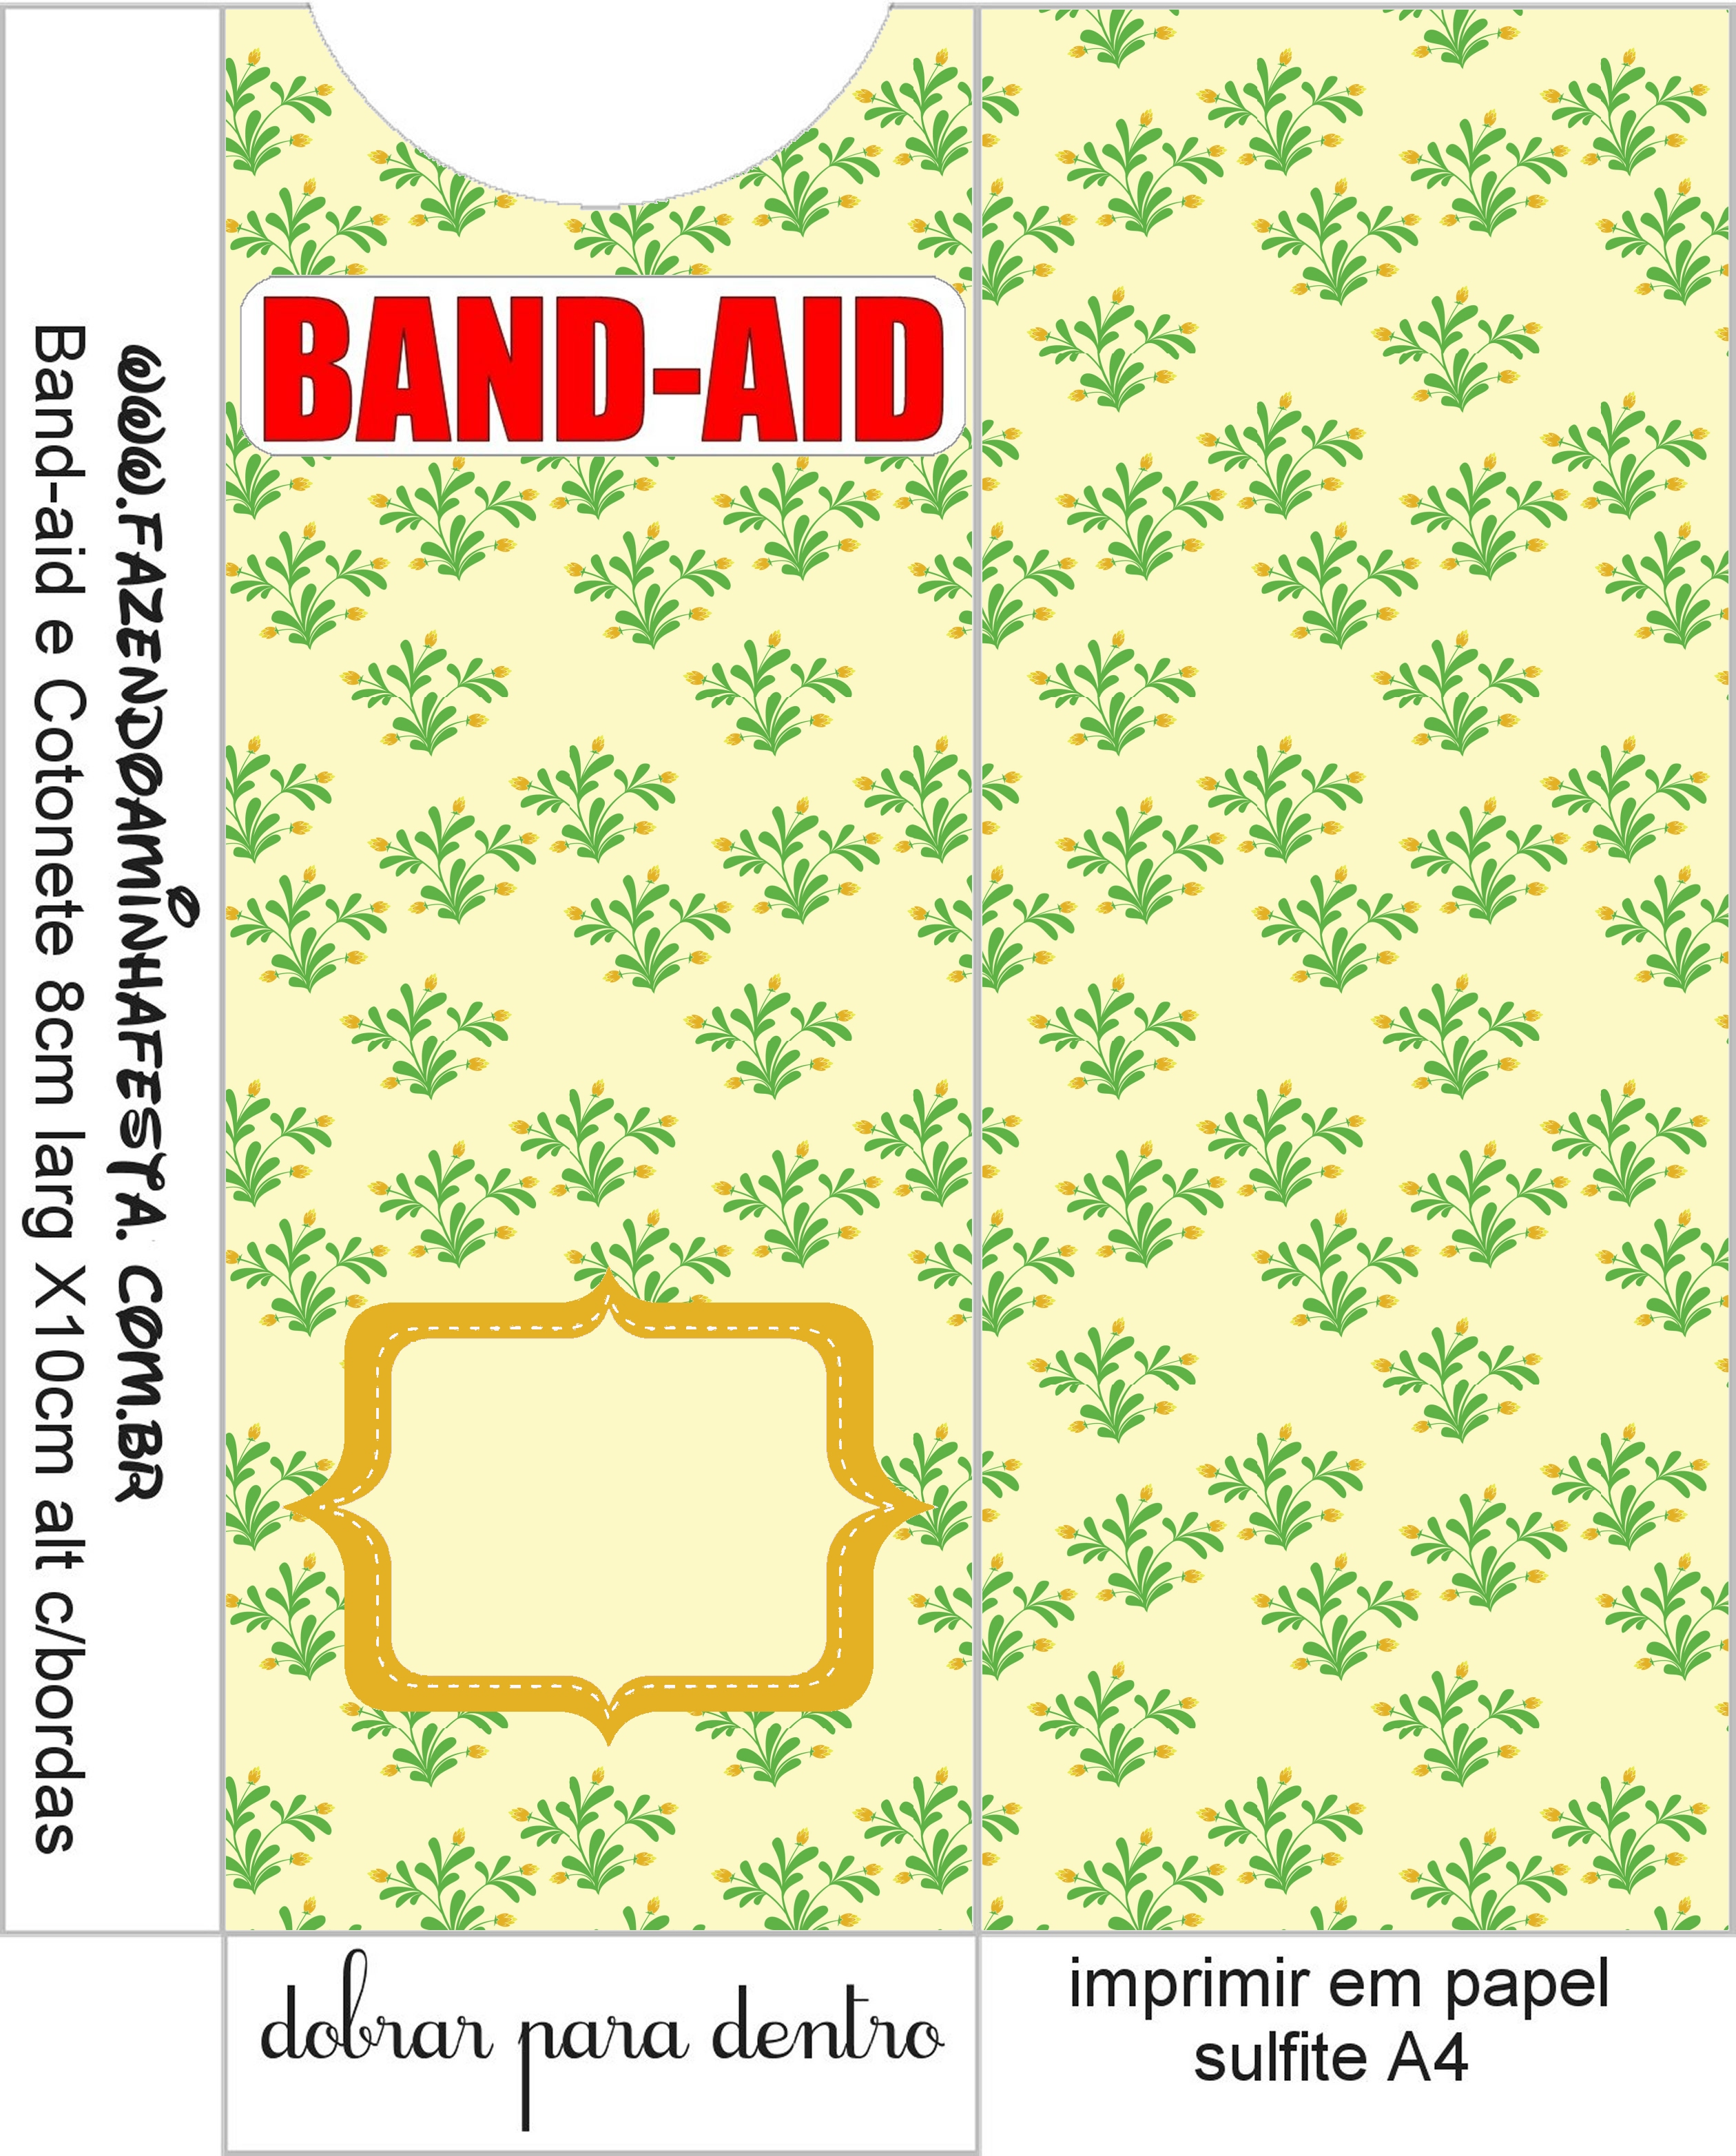 Molde Band aid Kit Toilet Banheiro Verde e Bege Floral: #C40707 2520 3130